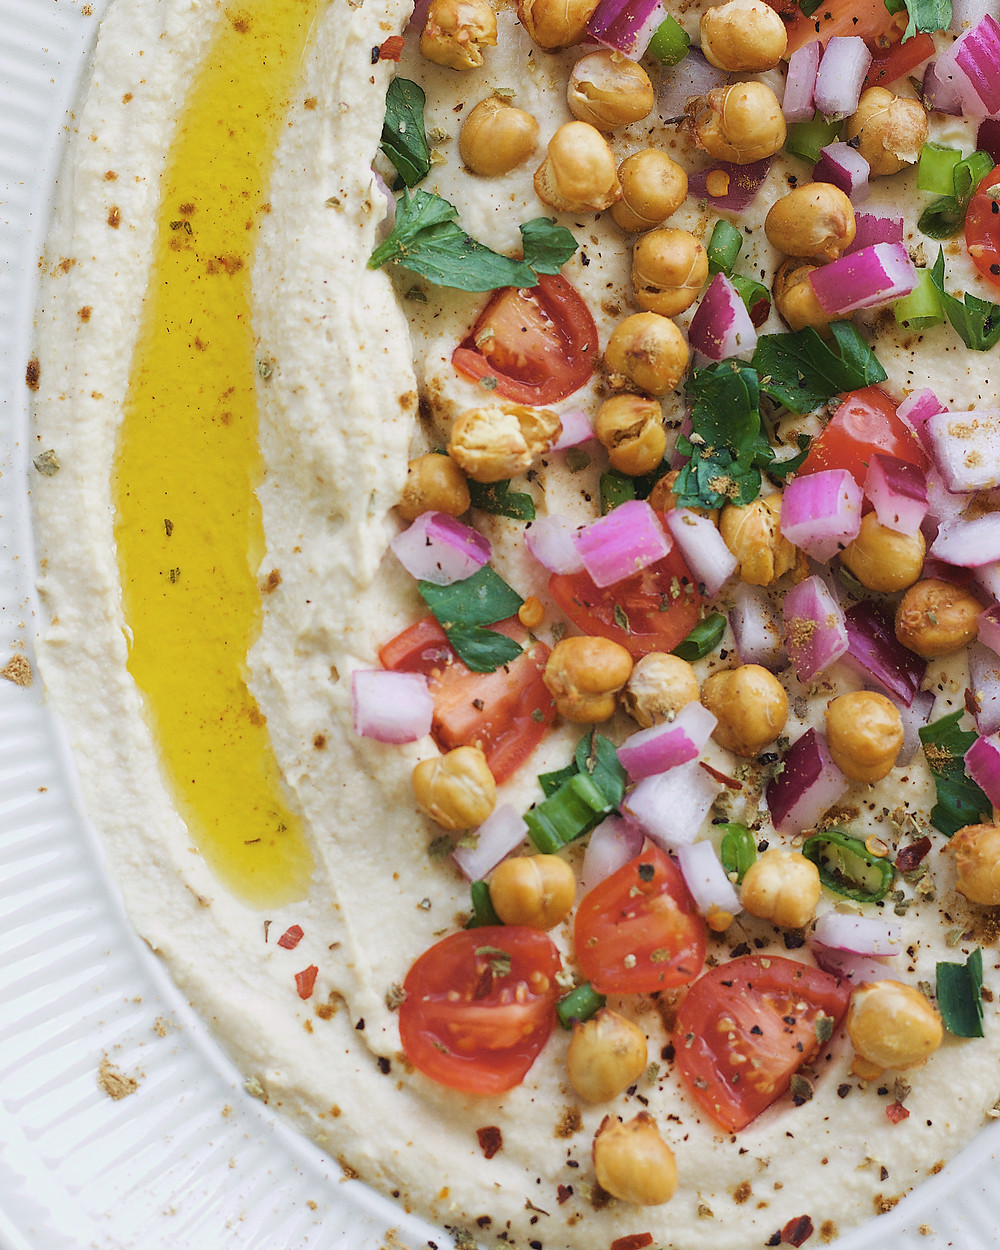 creamy authentic hummus